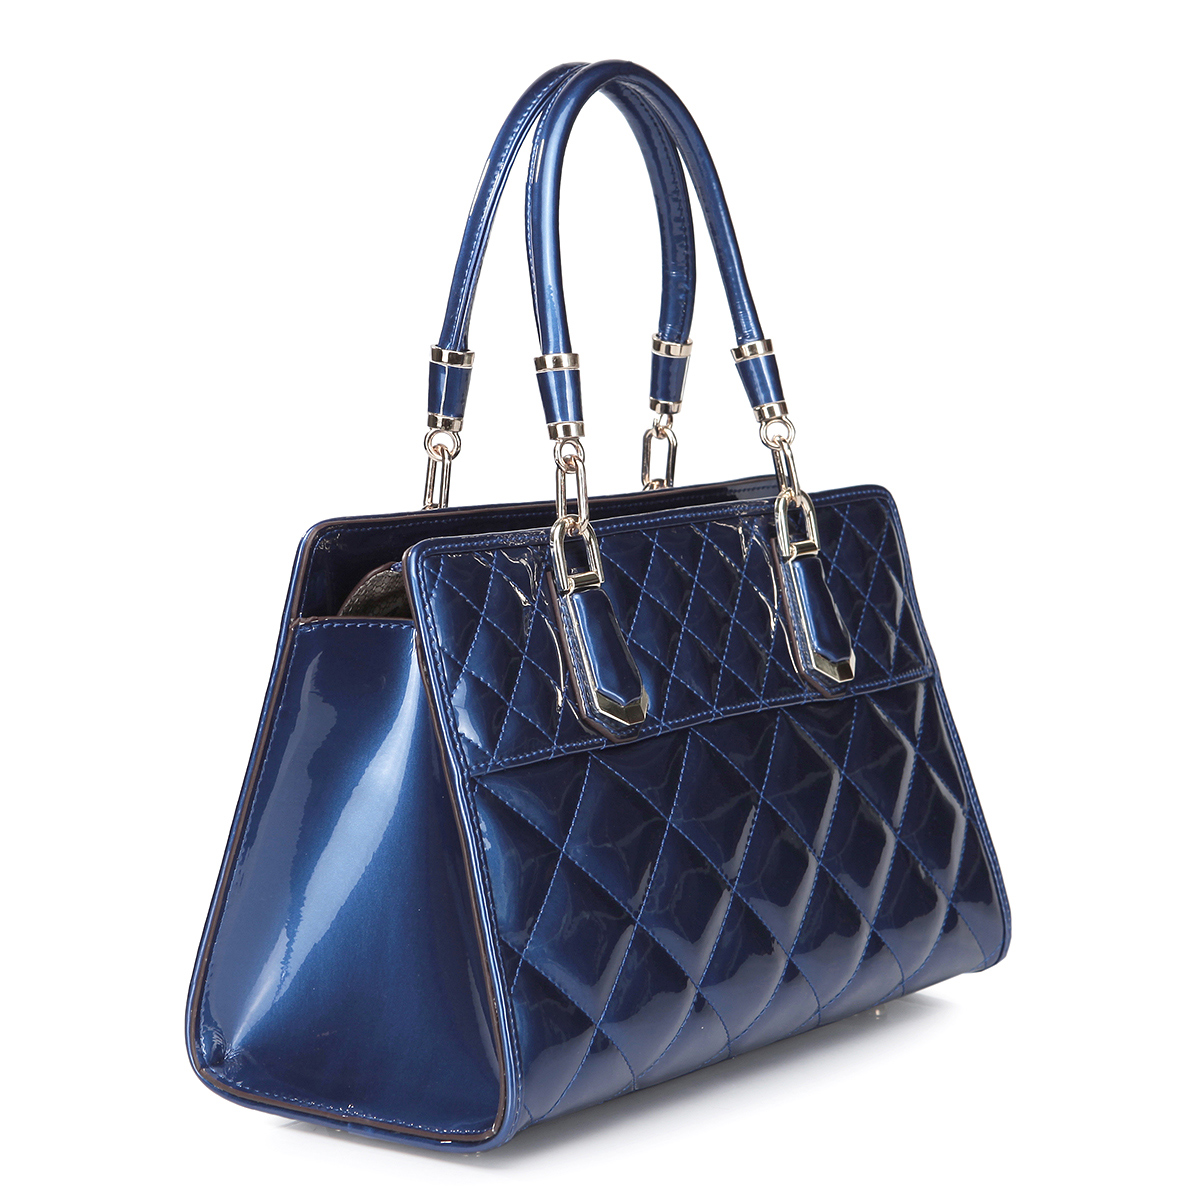 ... Home  Women's Bags  Tote Bags  Patent cowhide leather tote bag Blue